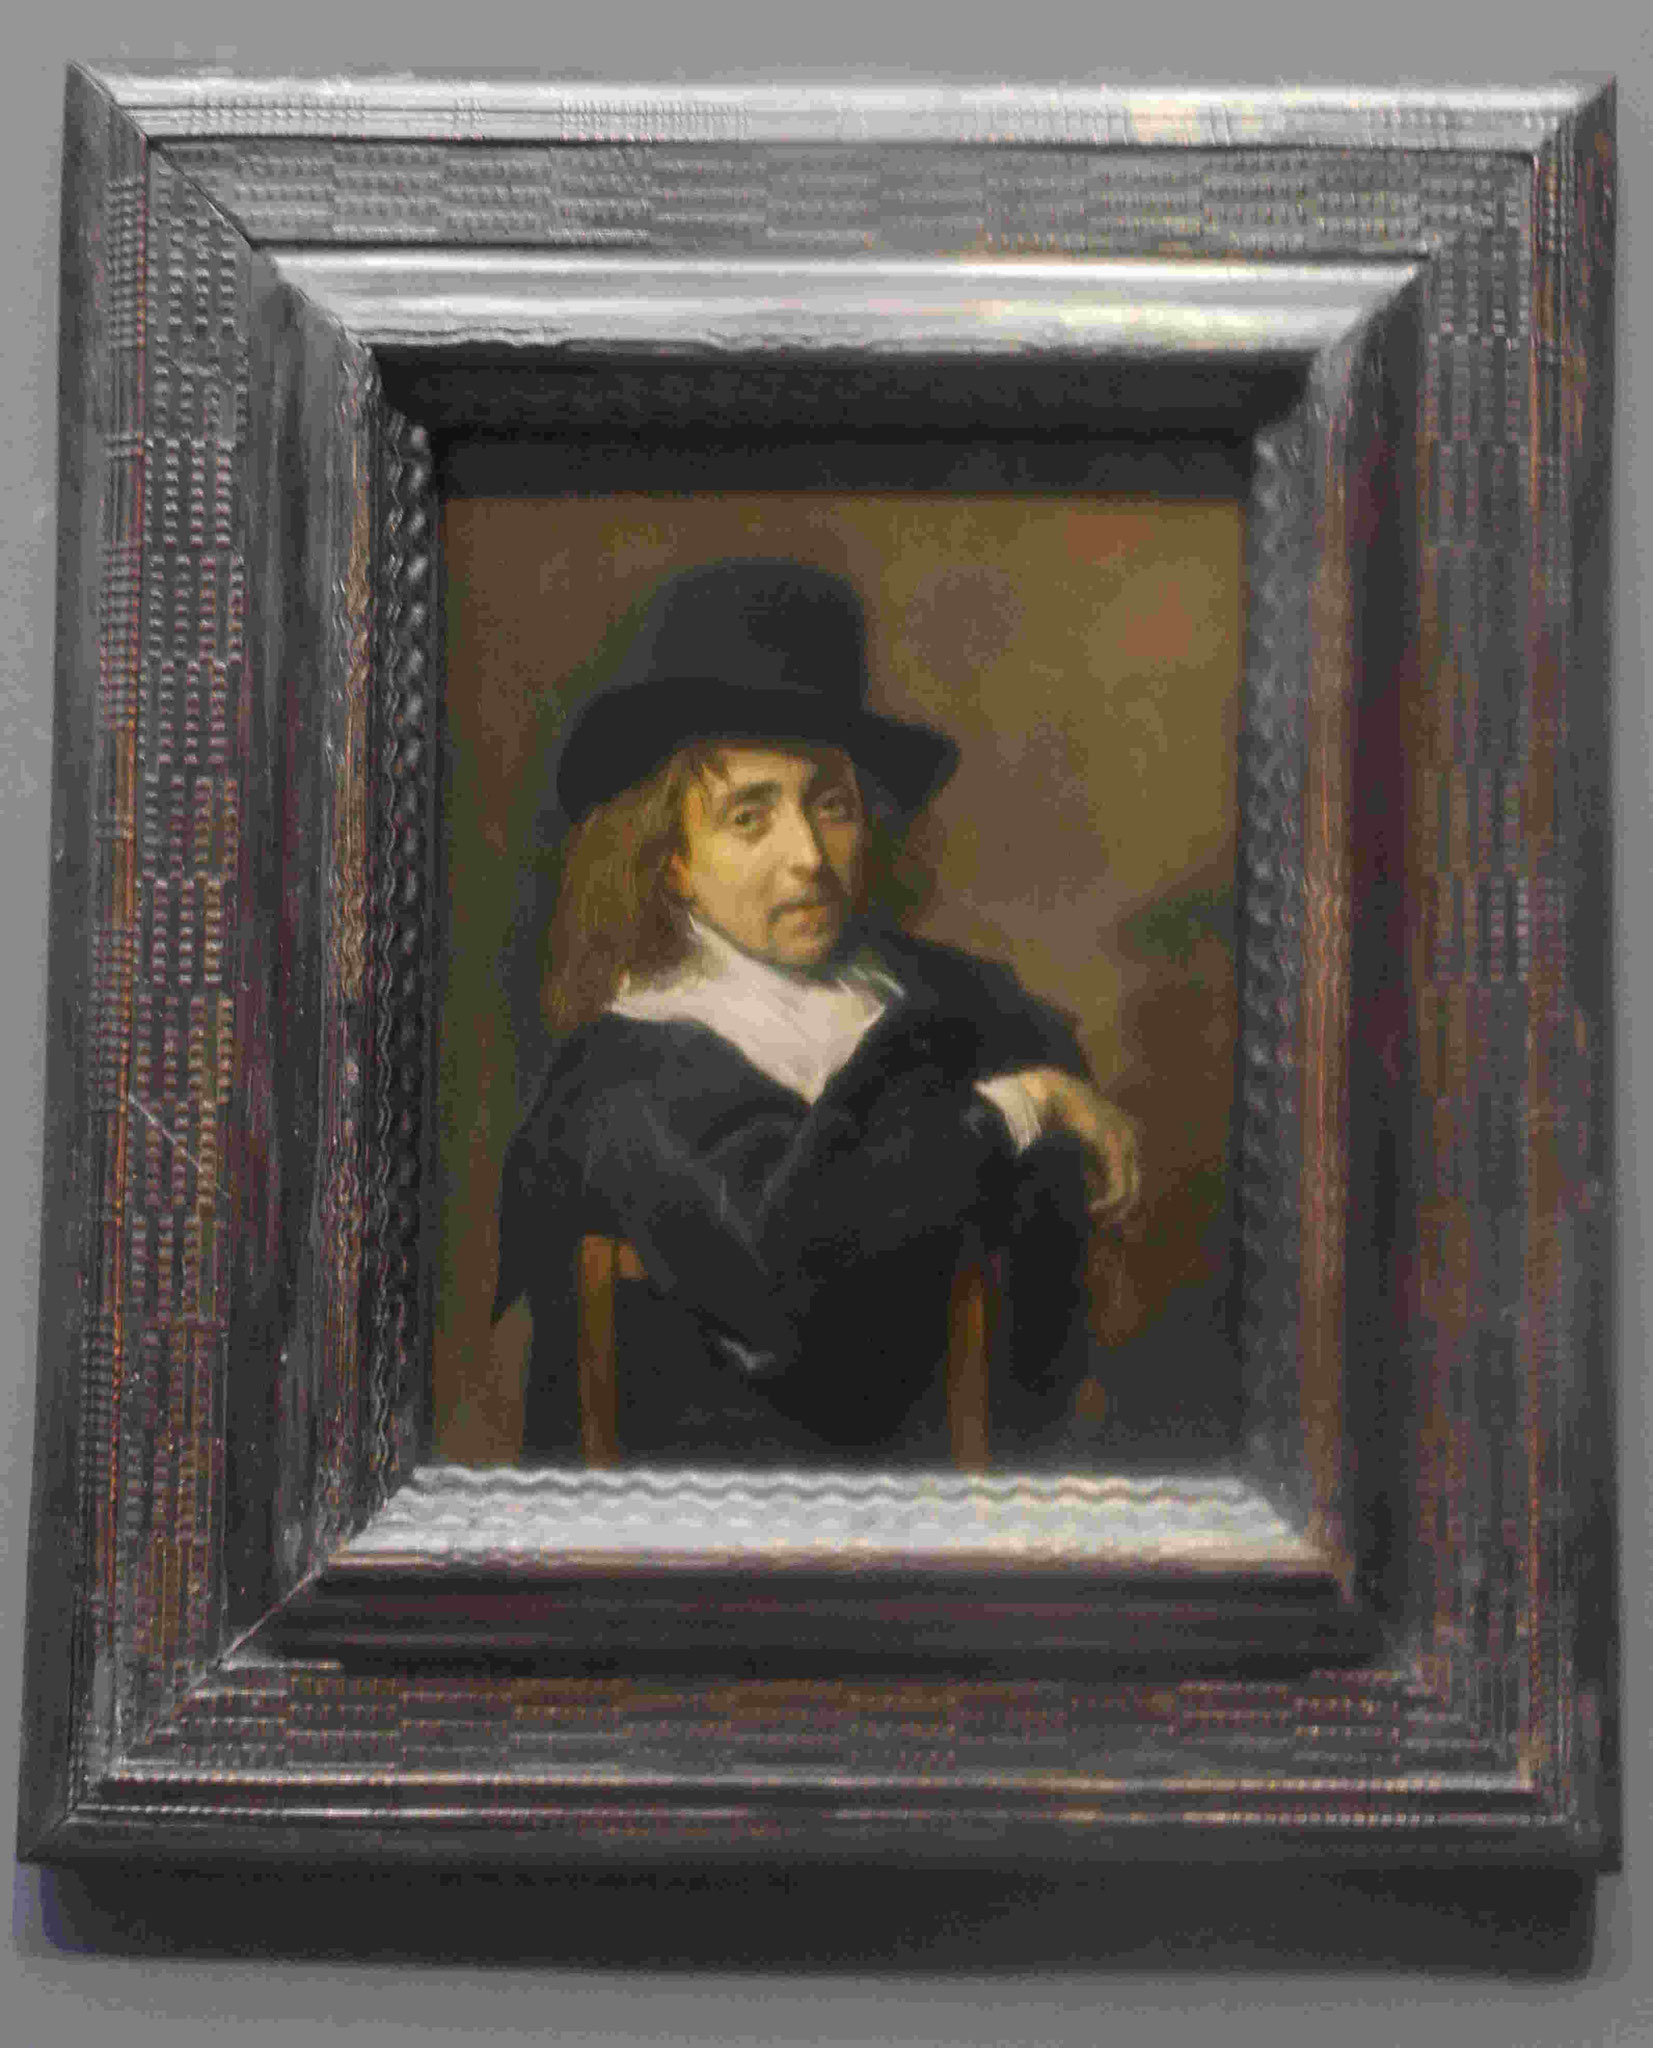 Frans Hals, National Galery of Canada, Ottawa